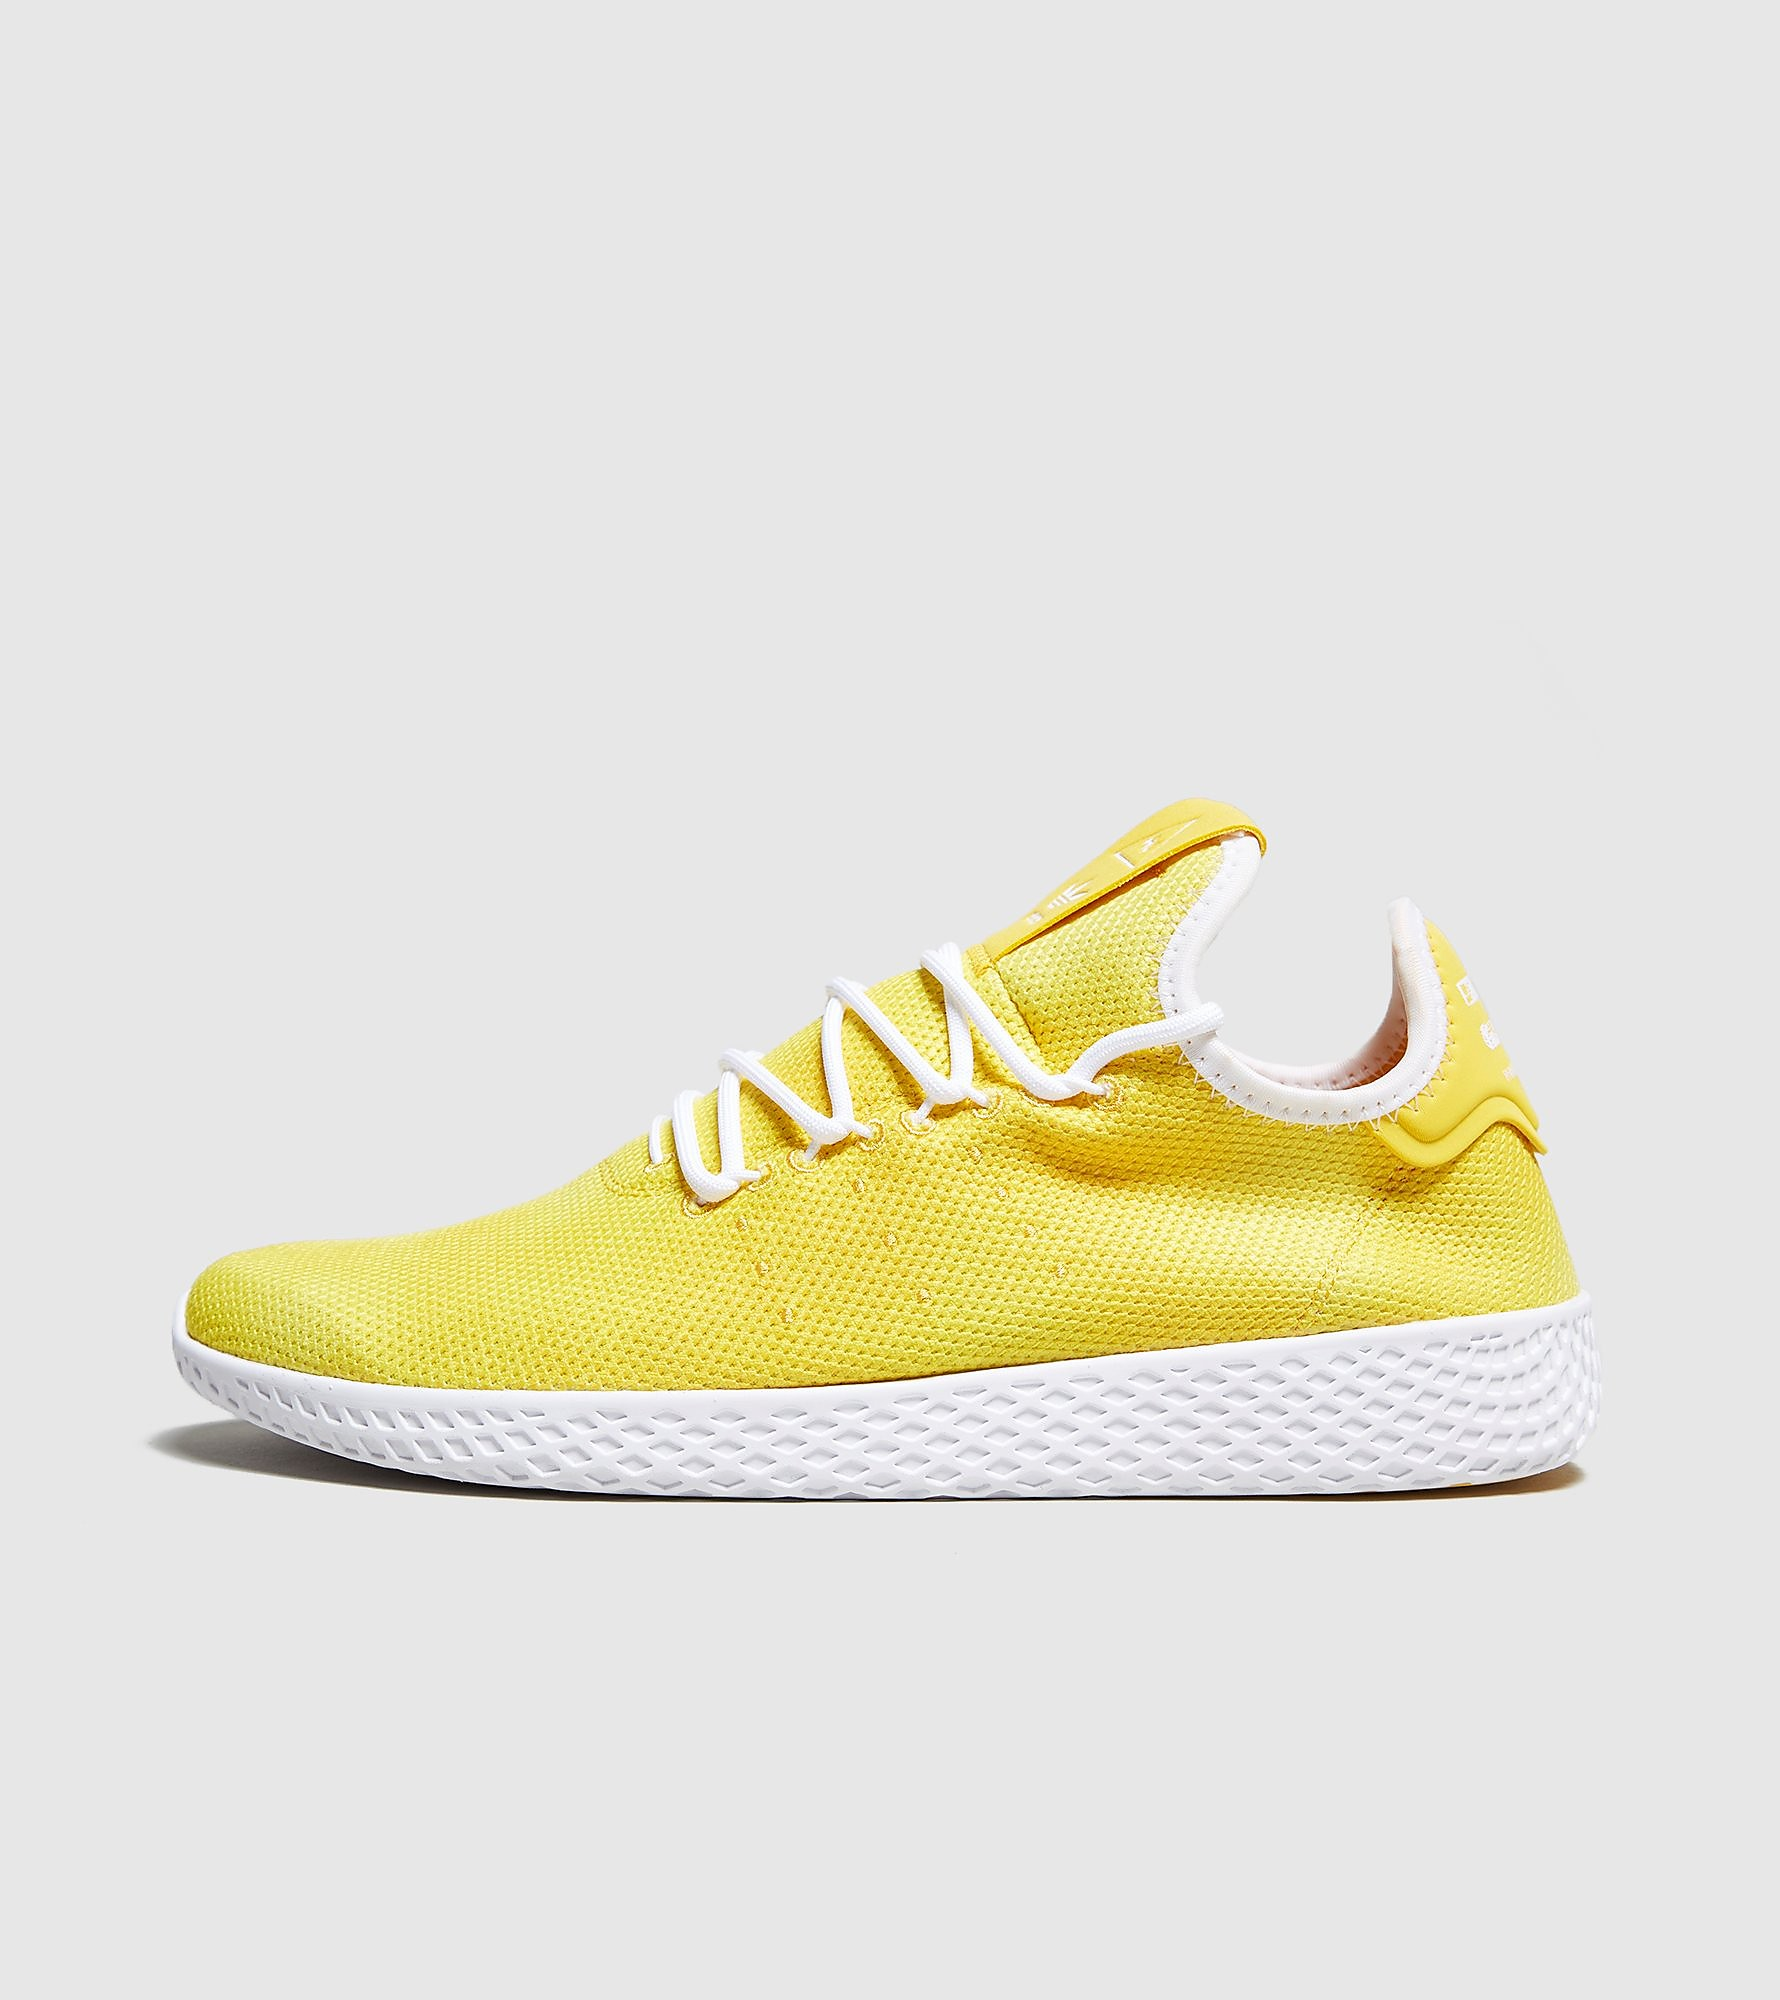 adidas Originals x Pharrell Williams Holi Tennis Hu